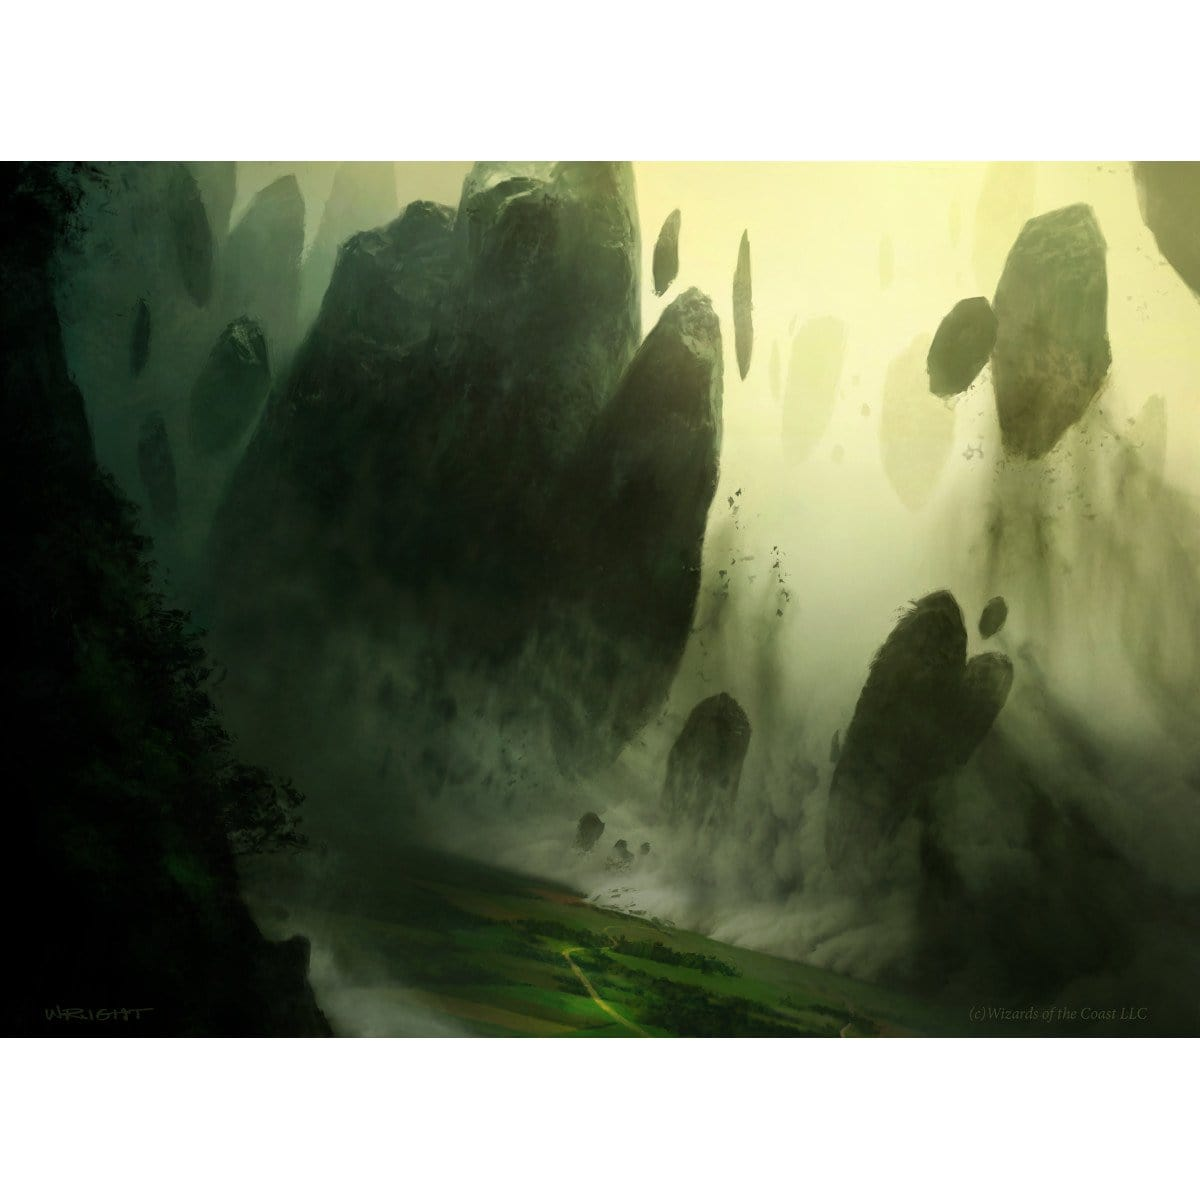 Encroaching Wastes Print - Print - Original Magic Art - Accessories for Magic the Gathering and other card games